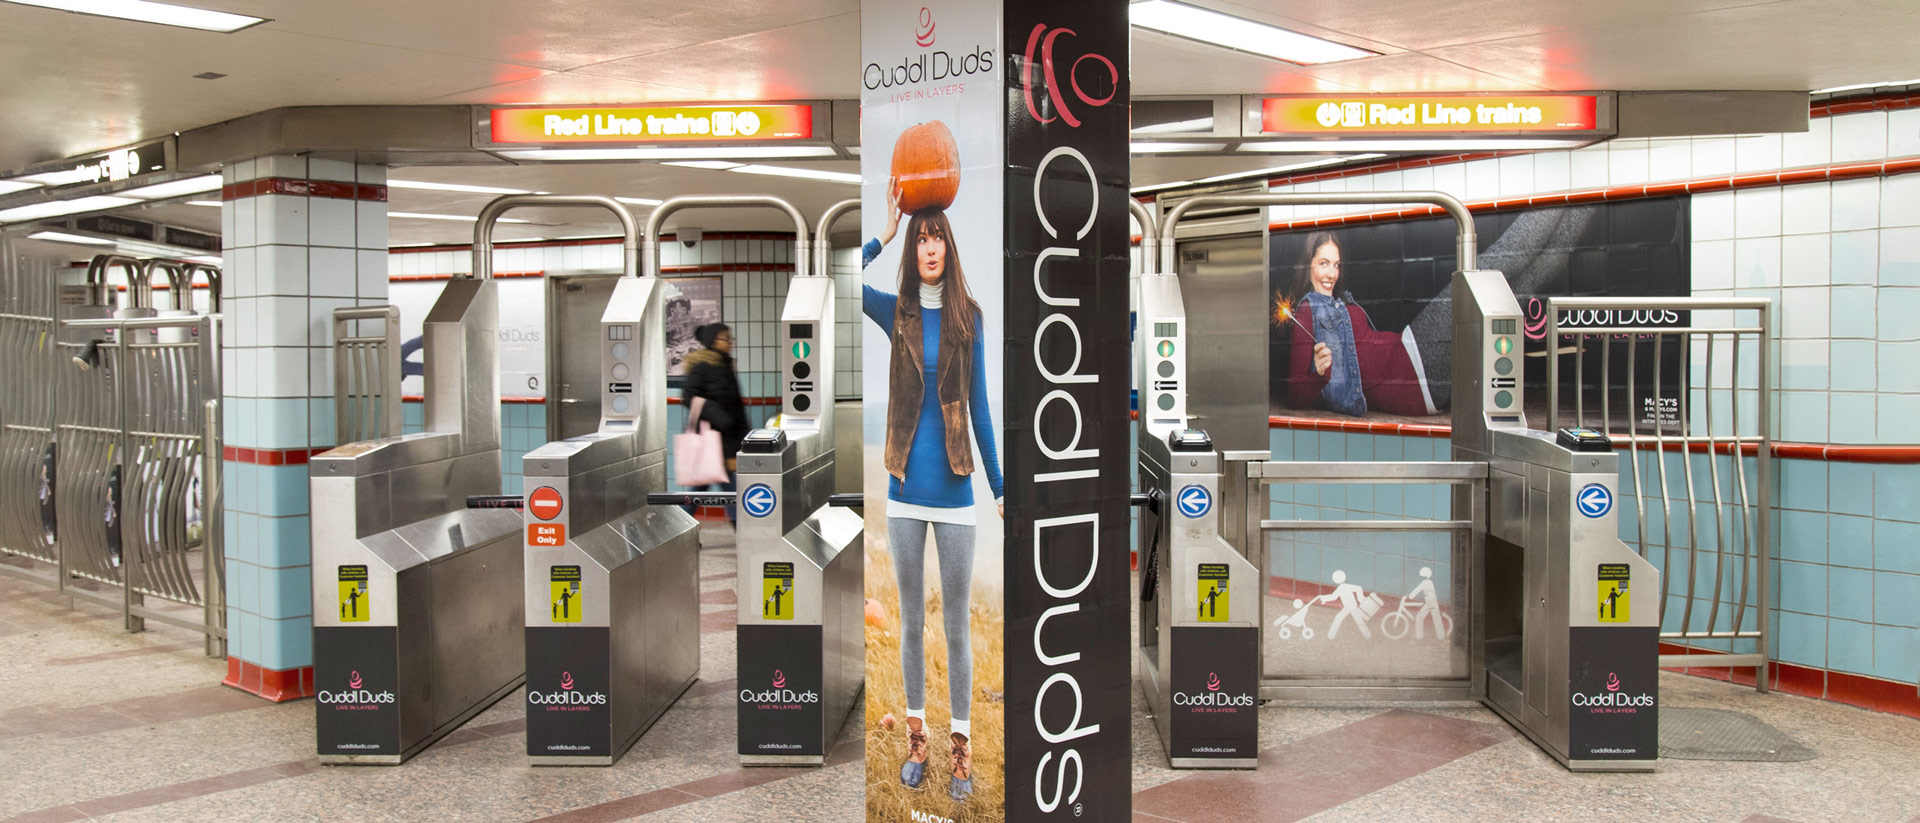 Outdoor Signage for CuddlDuds